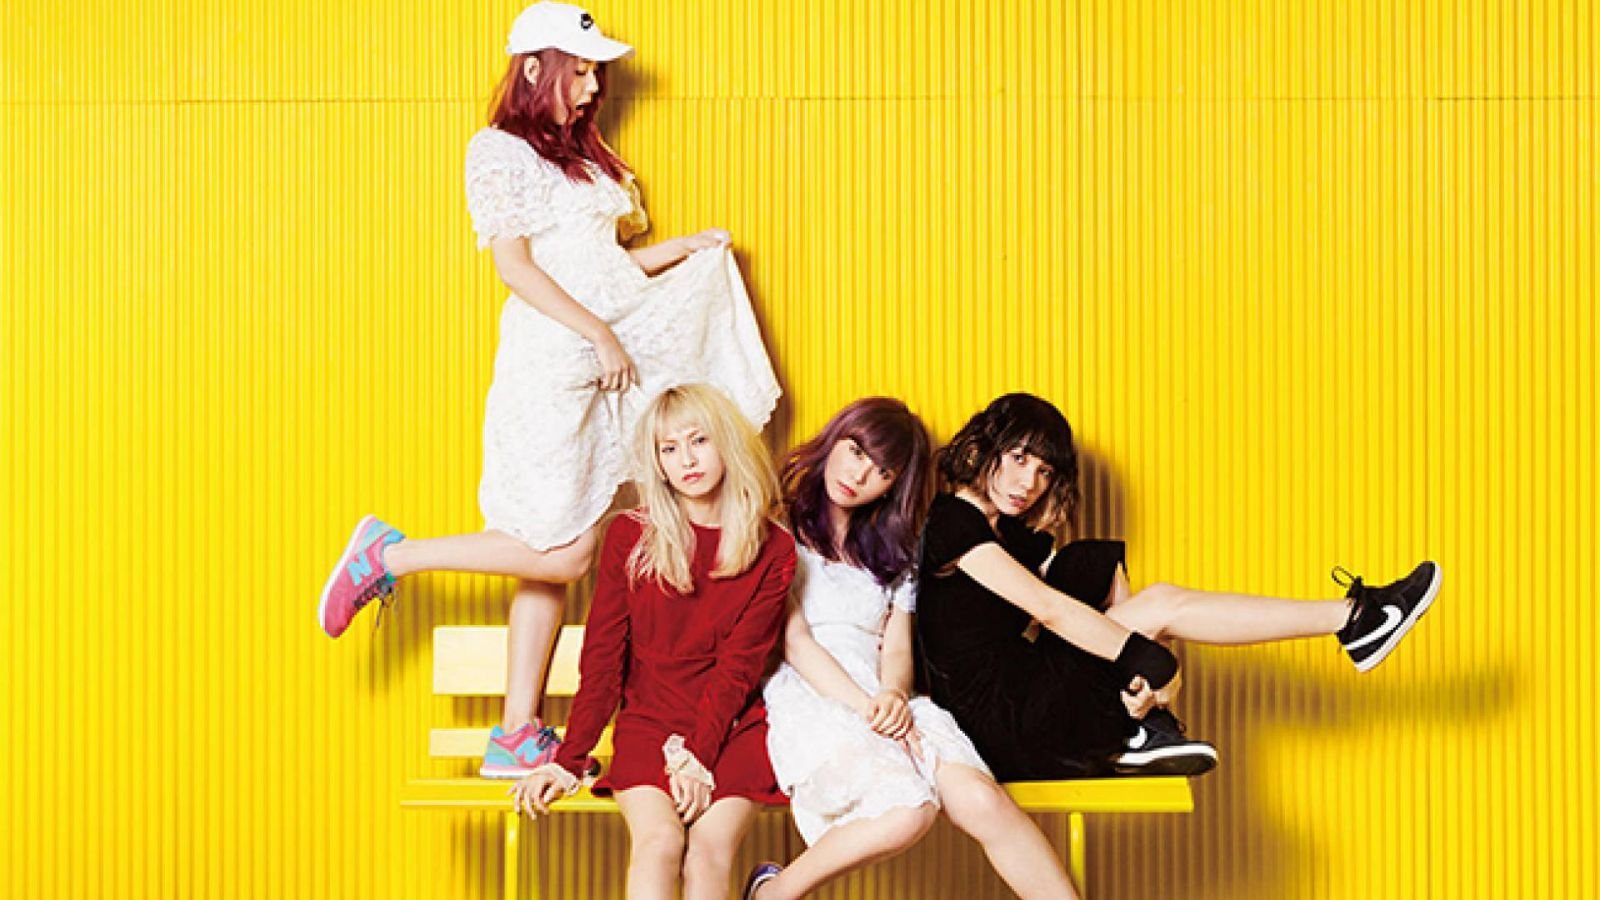 SCANDAL zurück in Europa © Epic Records Japan. All rights reserved.